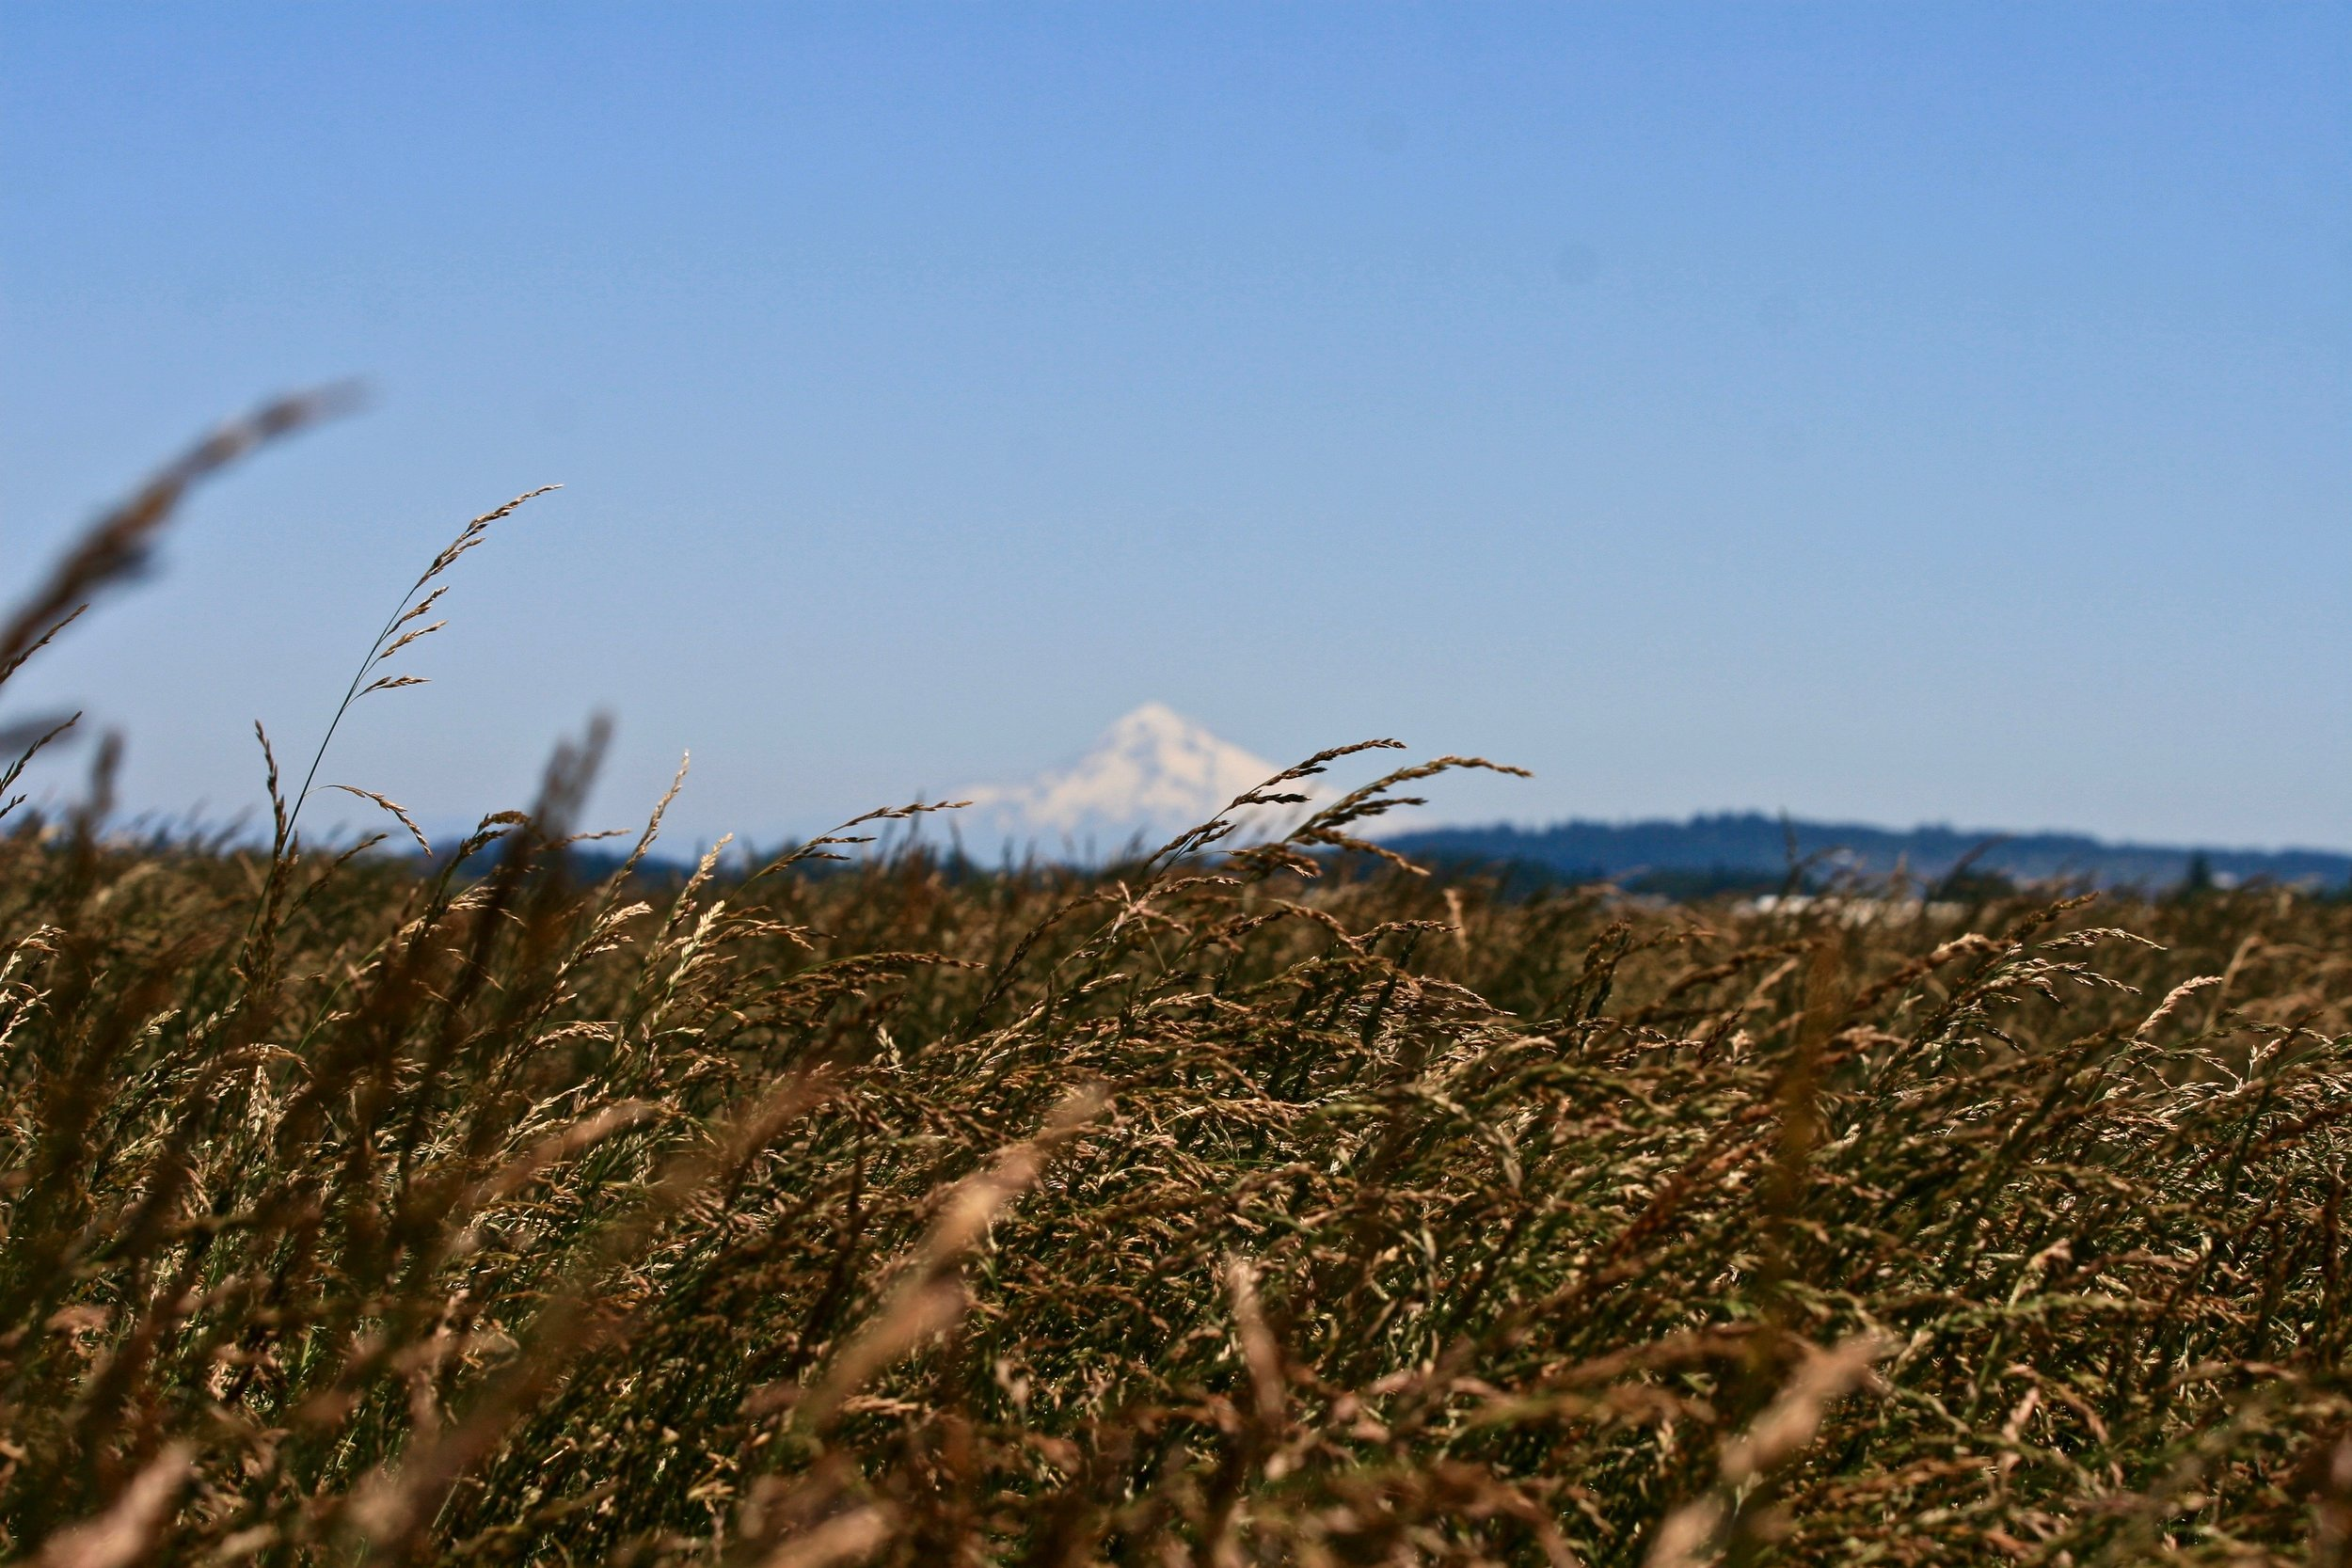 Being in the heart of one of the best grass seed growing regions in the world, we have been growing grass seed for 20+ years. This crop thrives in the cool, wet Pacific Northwest climate, which is why the Willamette Valley has become the world's largest producer of grass seed for both turf and forage.